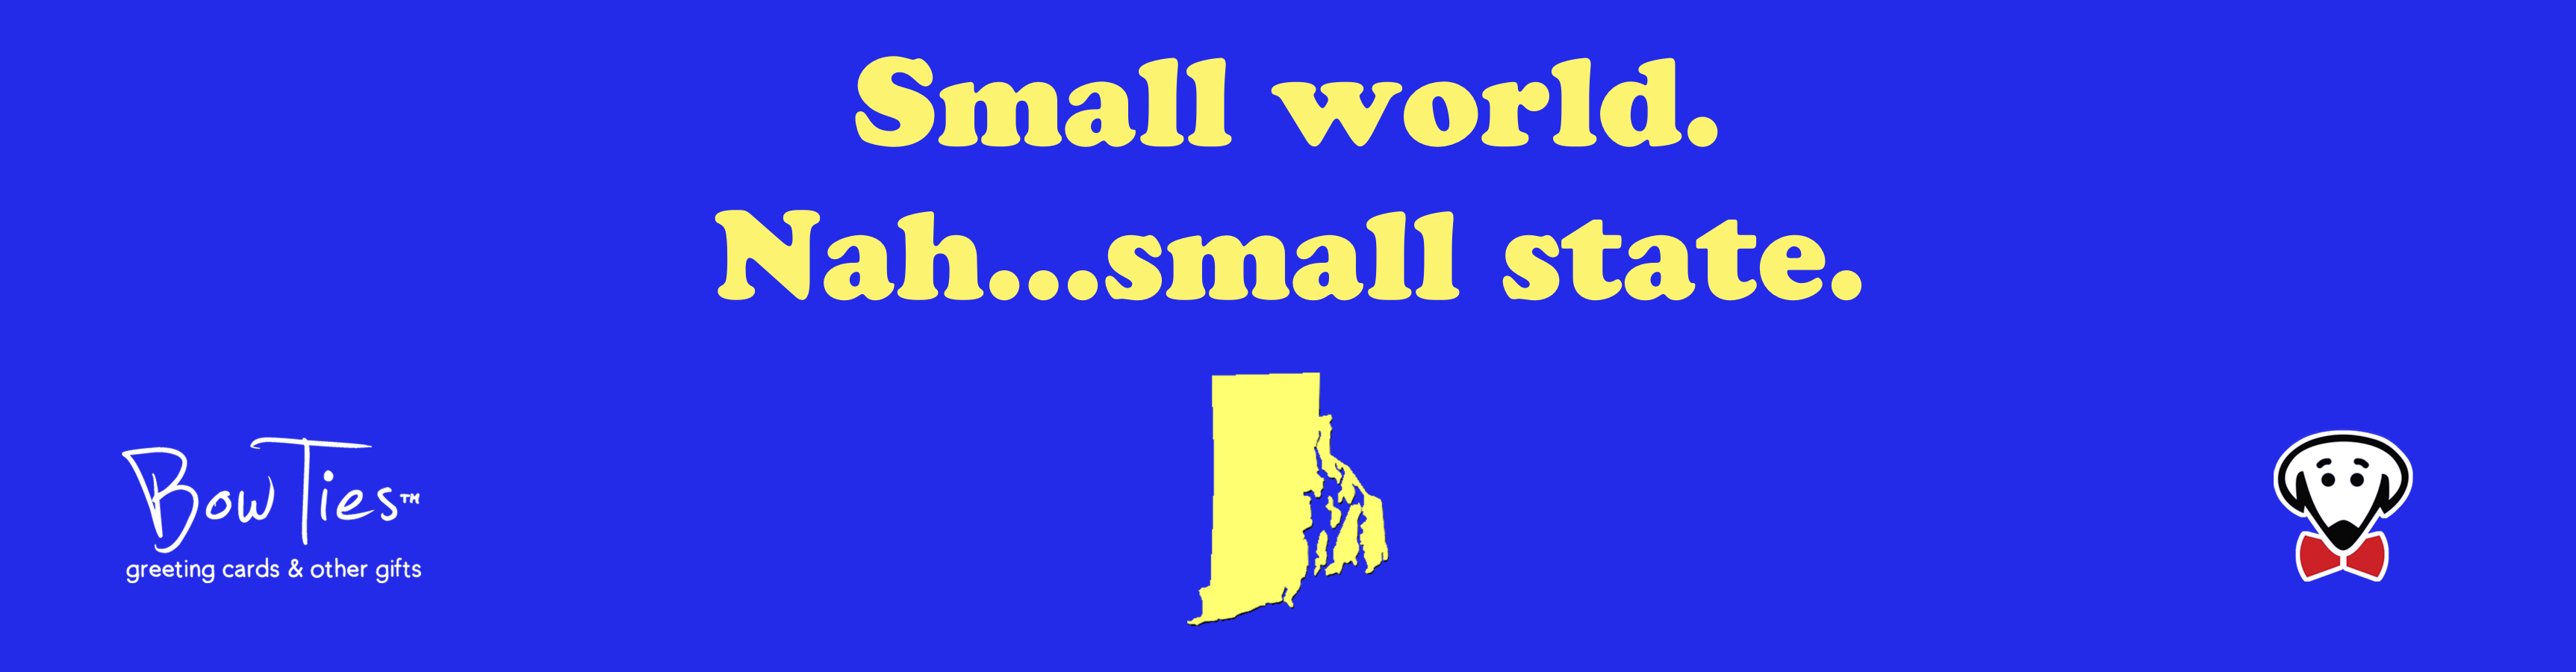 Small world. Nah…small state. (Rhode Island) – sticker